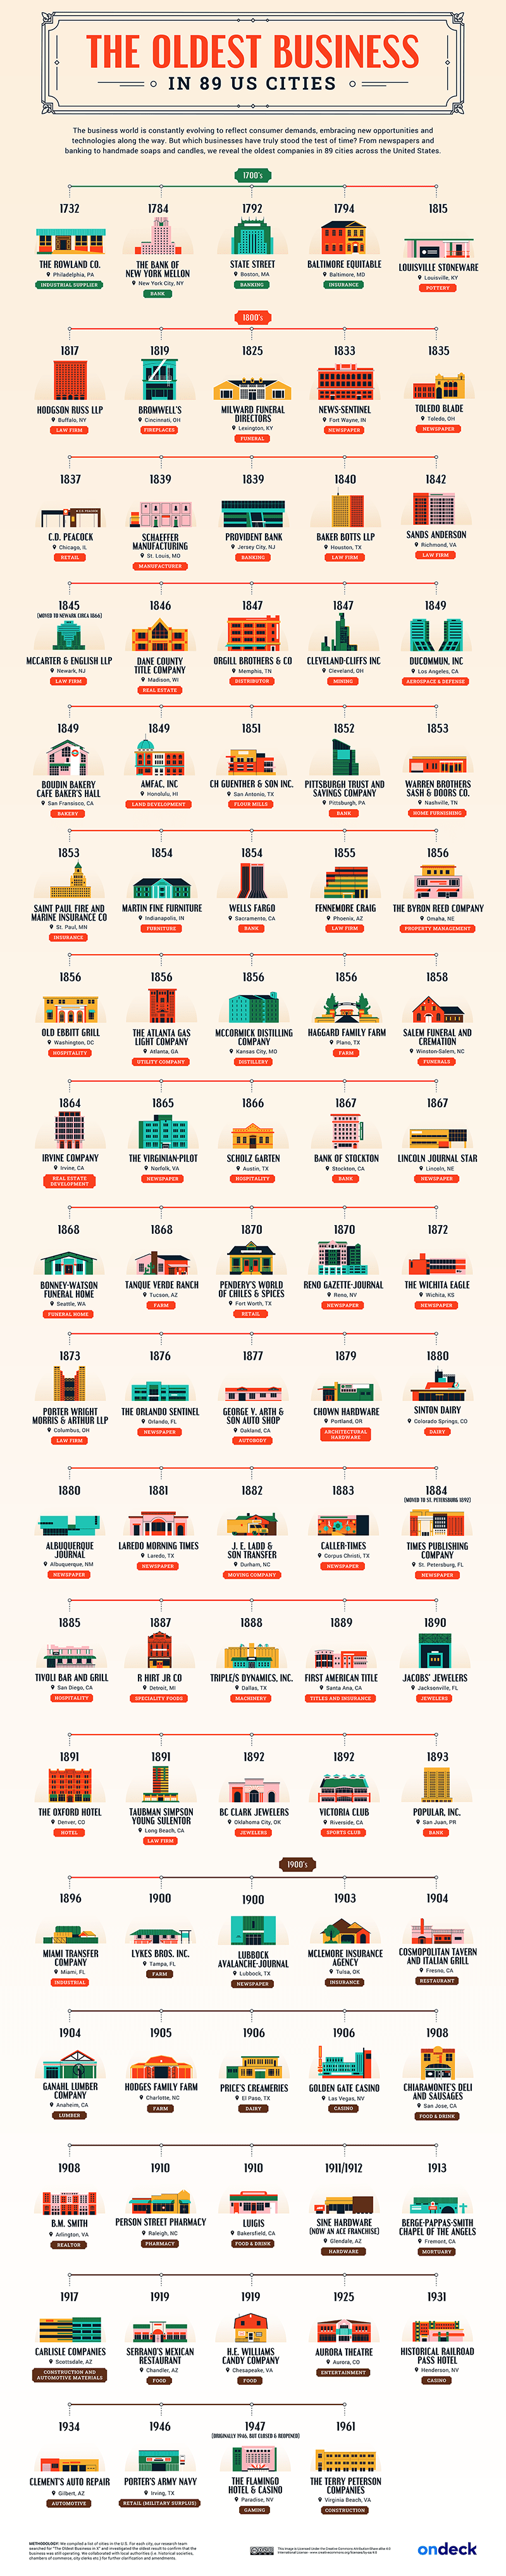 oldest businesses in US infographic